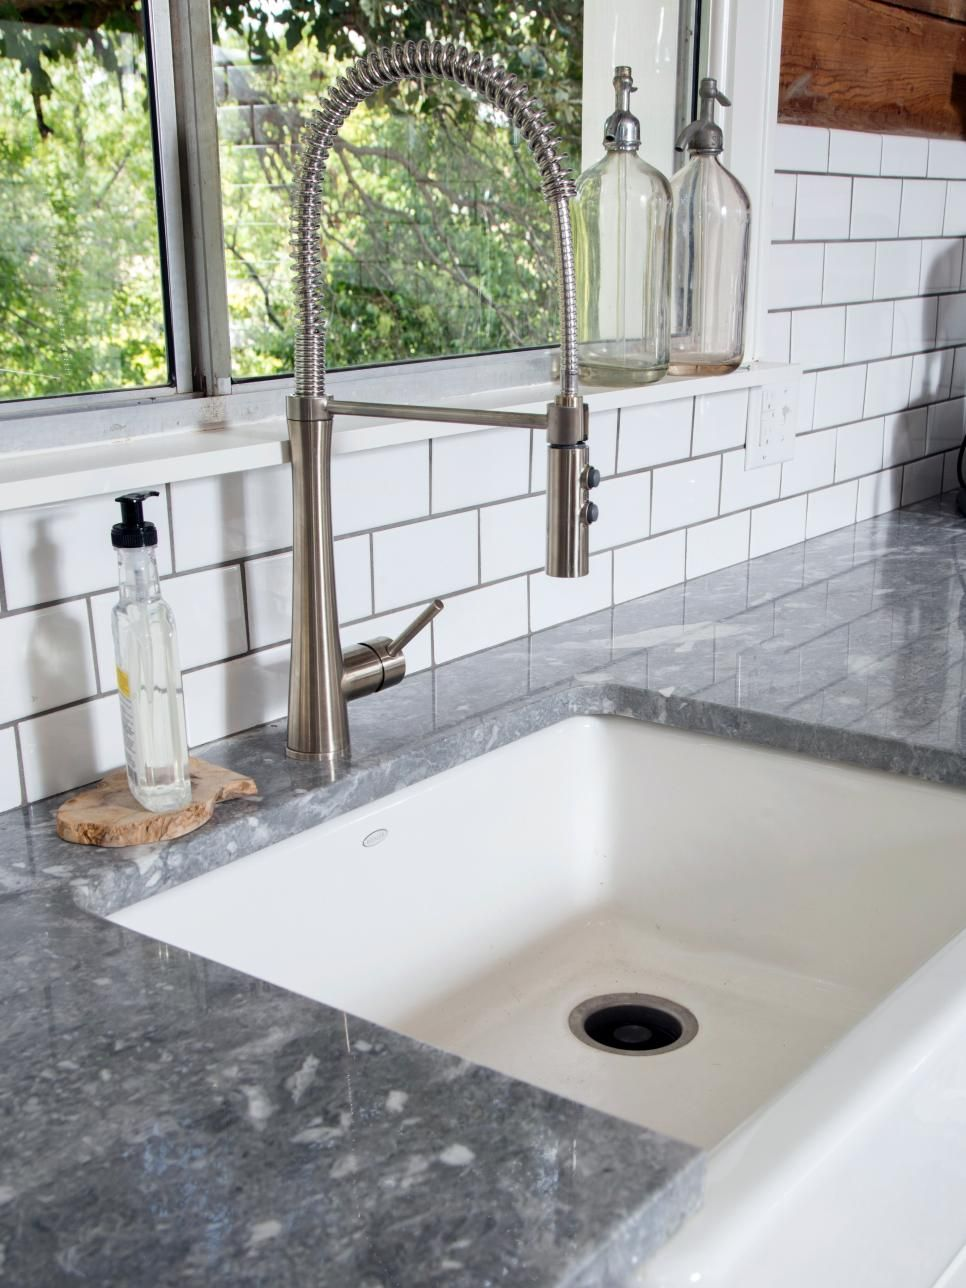 Fixer upper craftsman kitchen - 17 Best Images About Fixerupper2 1littlehouseonprarie On Pinterest Paint Colors Craftsman Remodel And Magnolia Homes